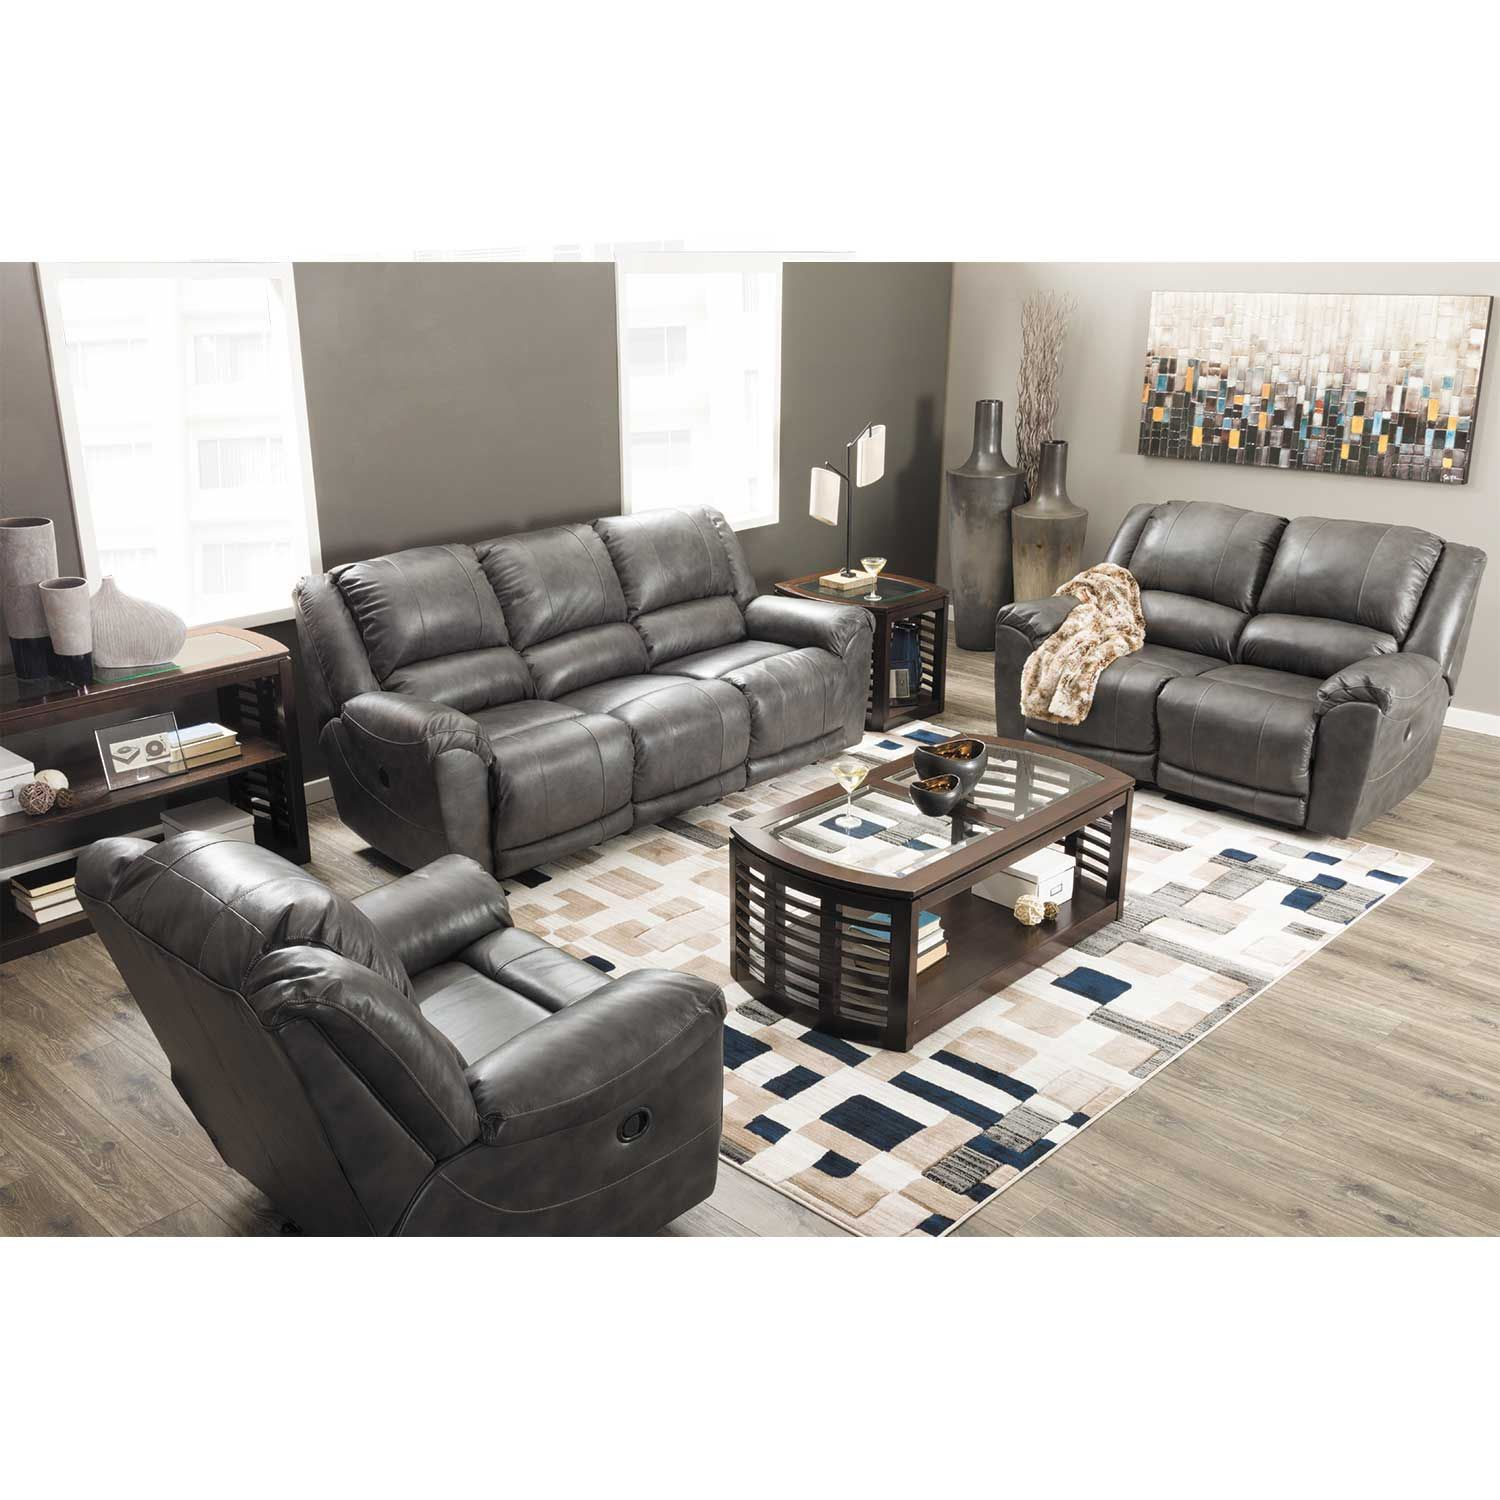 Persiphone Charcoal Leather Reclining Sofa